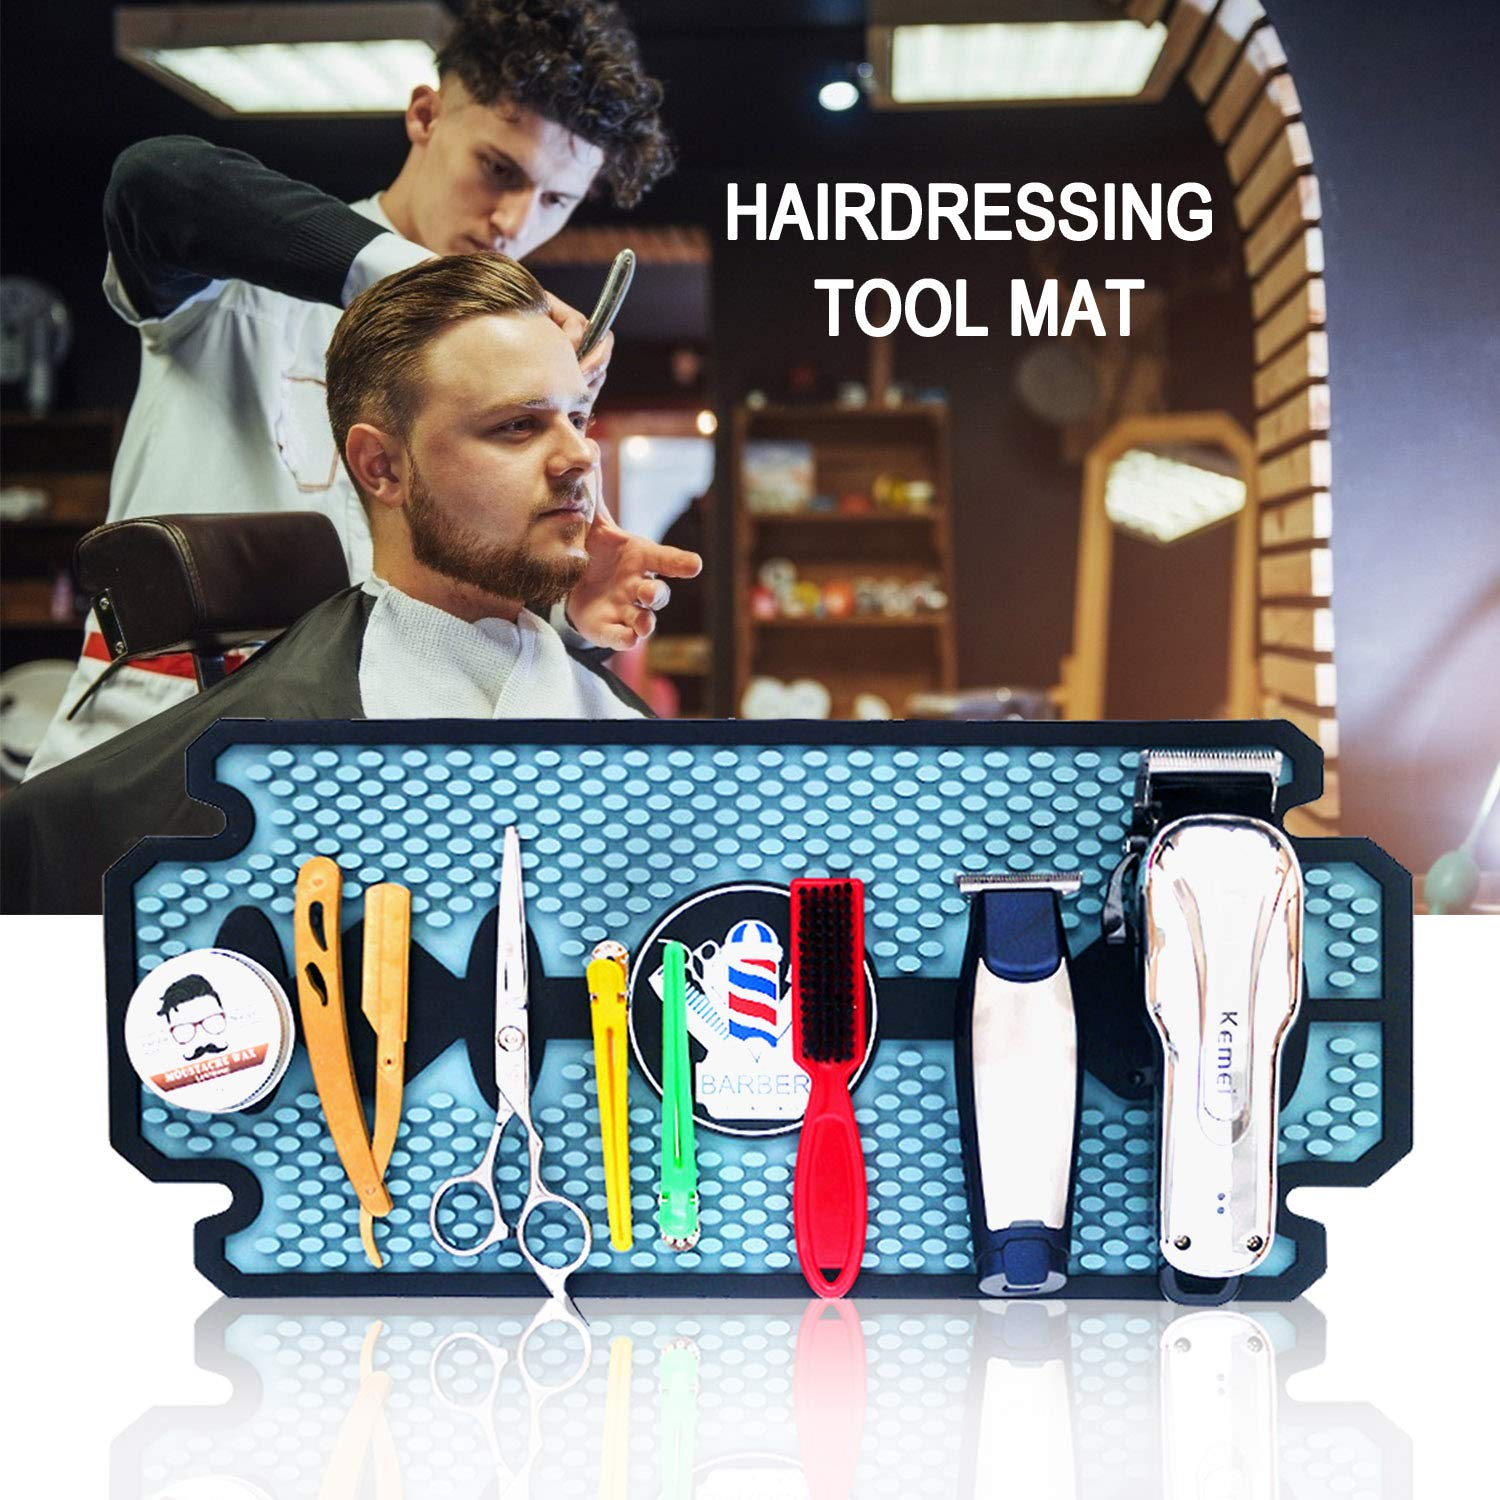 Noverlife Rubber Barber Station Mat, Heat Resistant Anti Slip Hair Salon Service Mat, Double Edge Countertop Protector Pad for Hair Styling Tools, Professional Flexible Mat for Clippers Salon Tools: Beauty